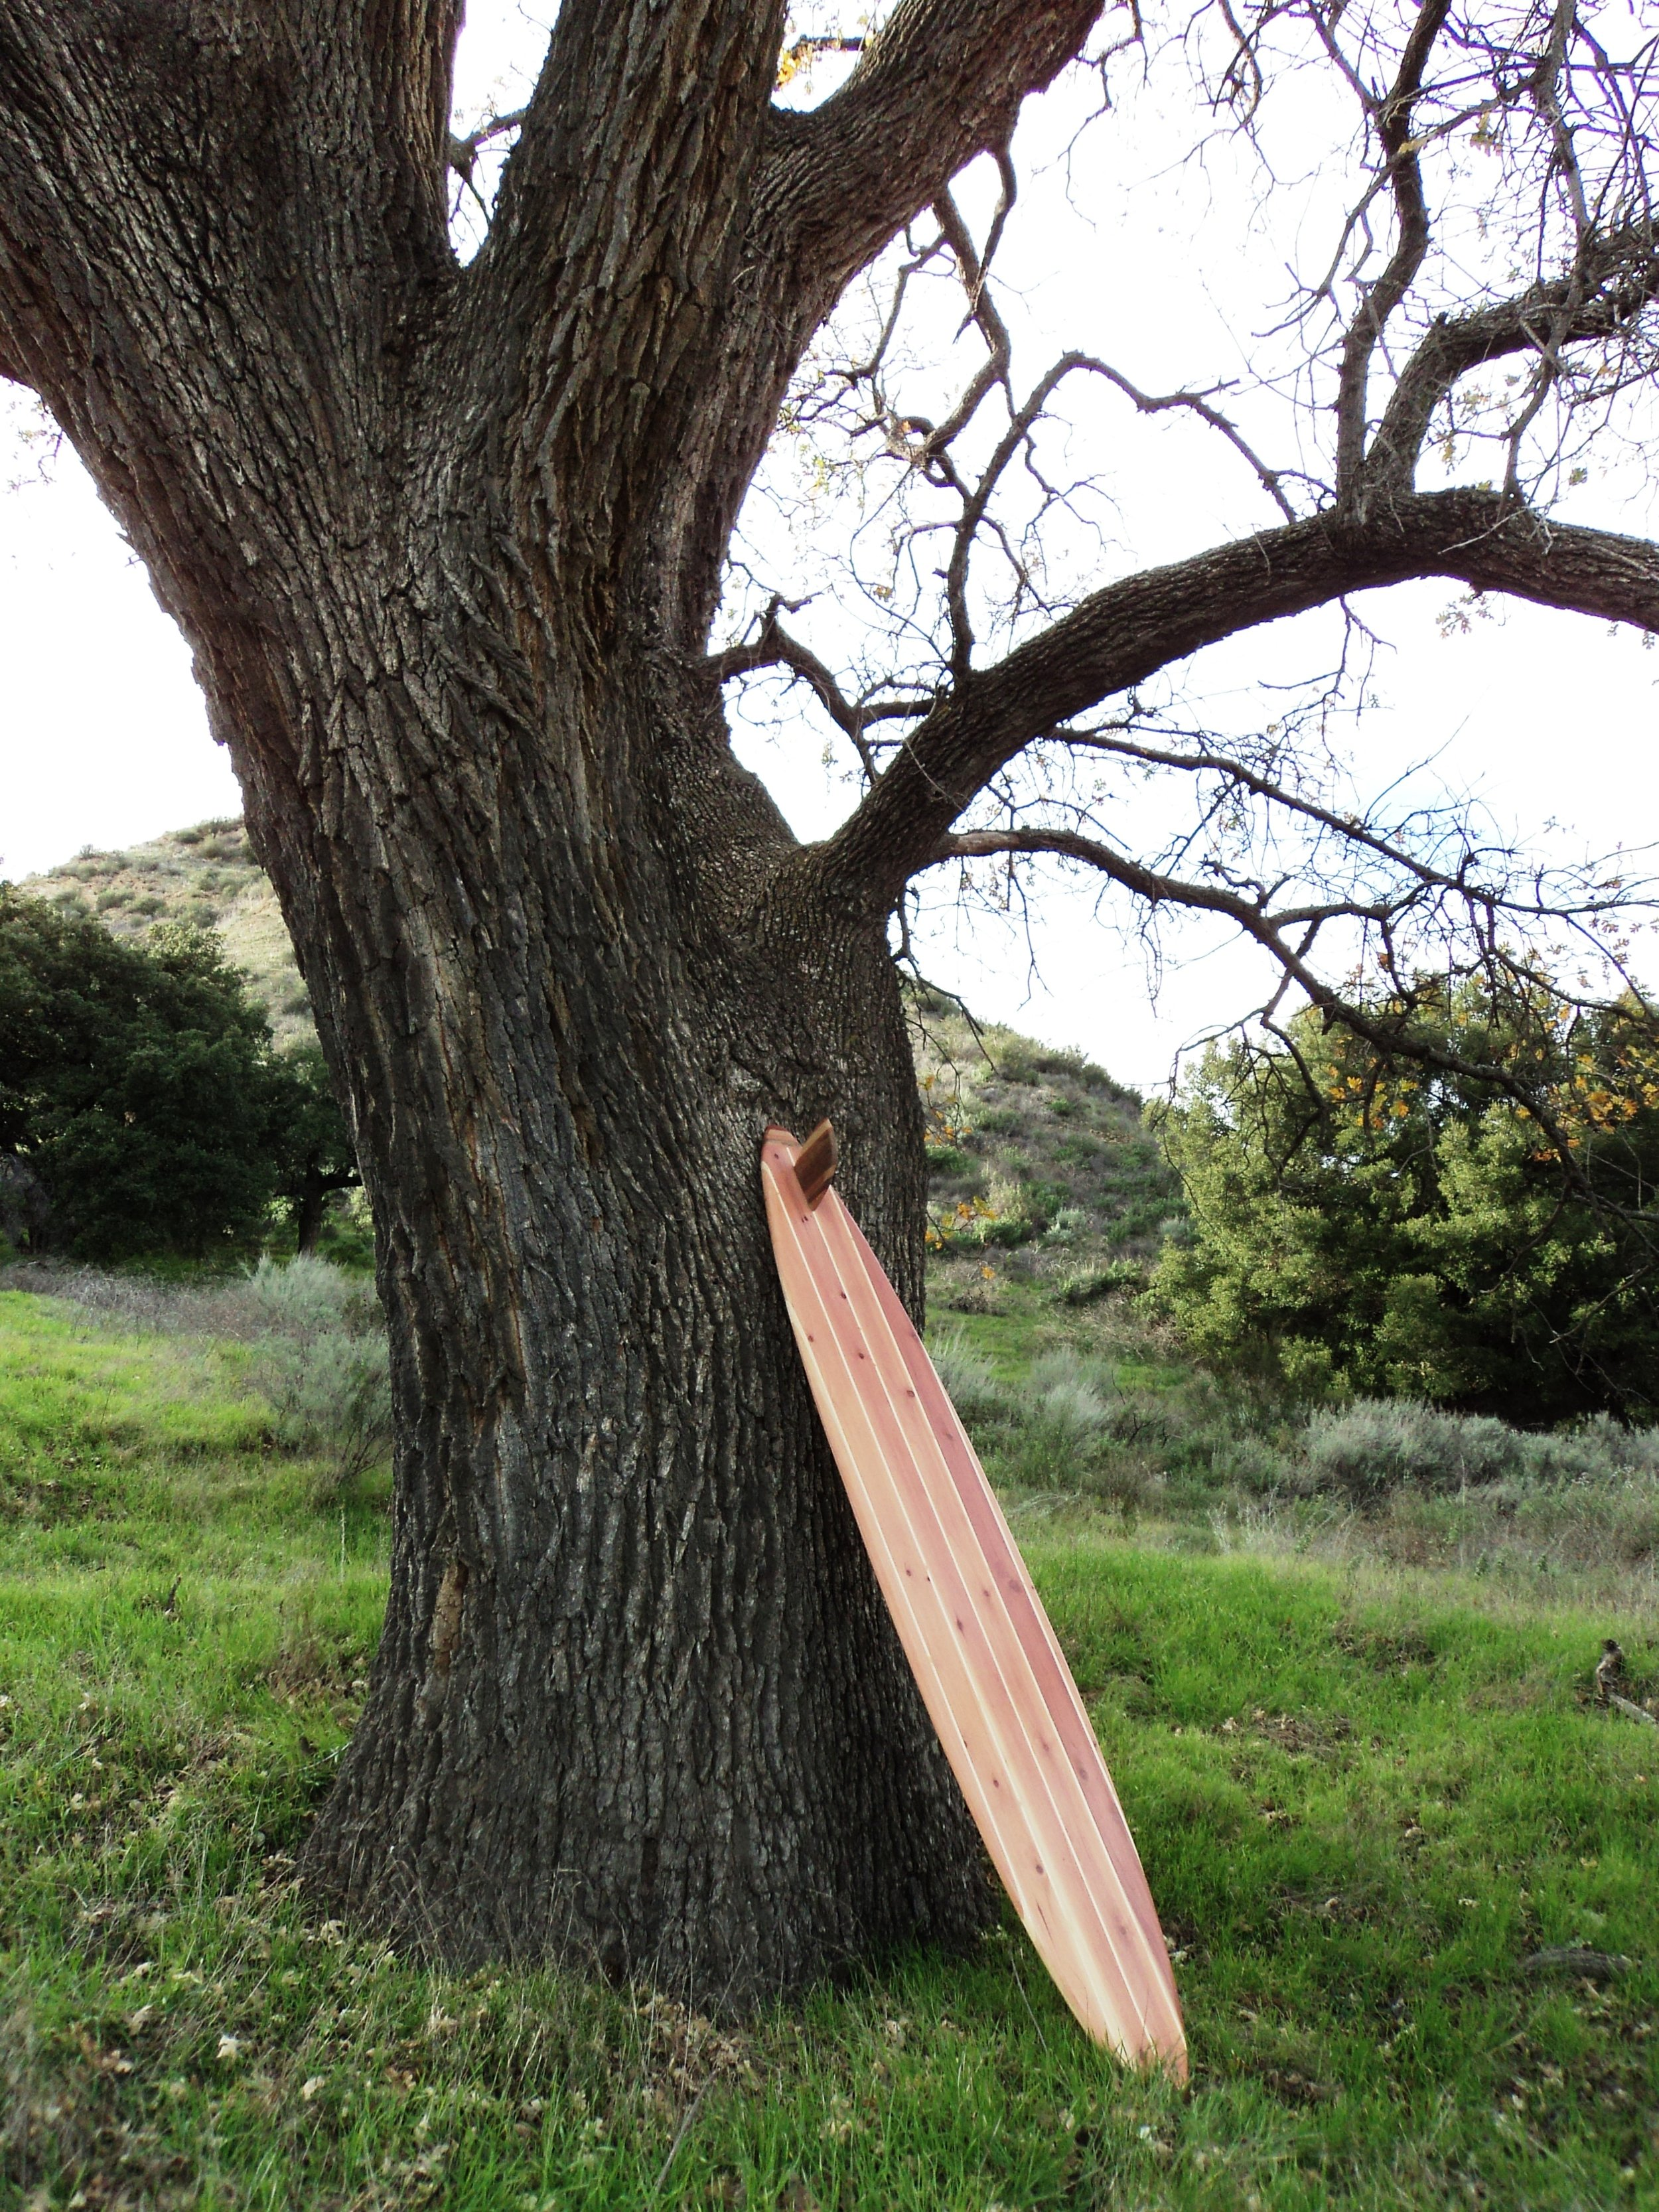 Nature wood surfboard photo shoot 046.jpg